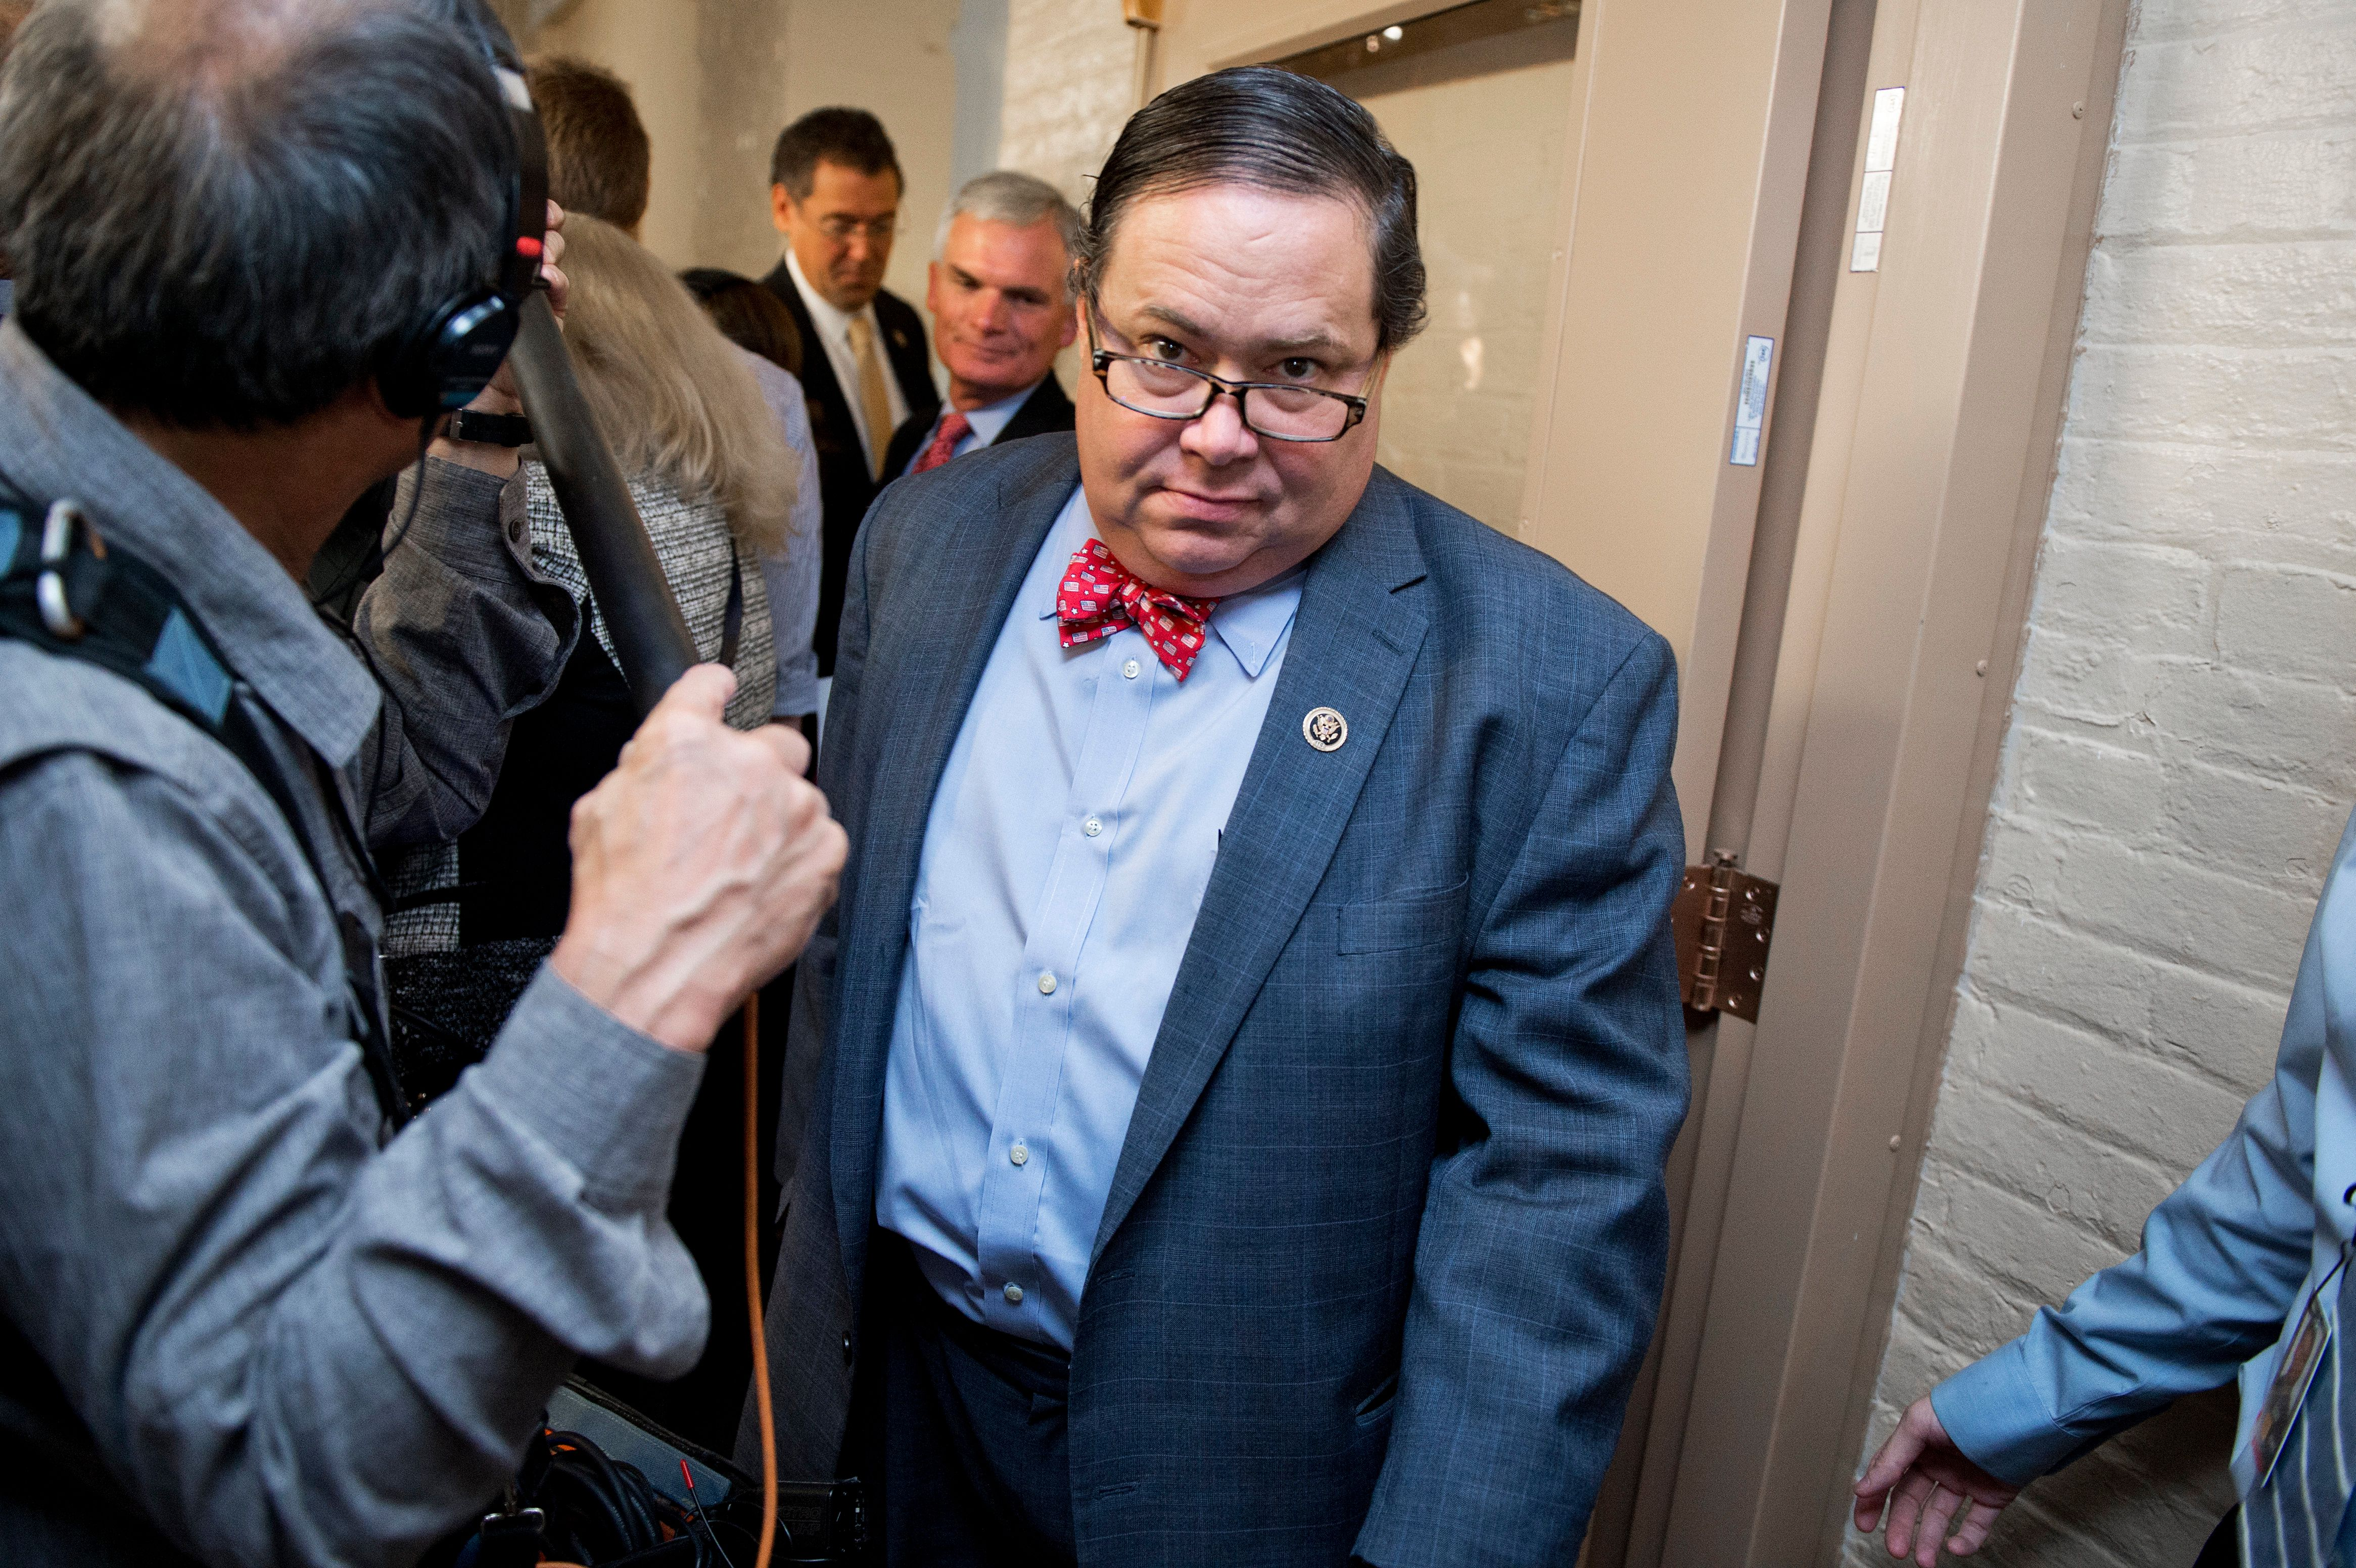 Blake Farenthold Scandal >> Blake Farenthold Blames 'F-Tards,' Me Too Campaign For His Downfall | HuffPost